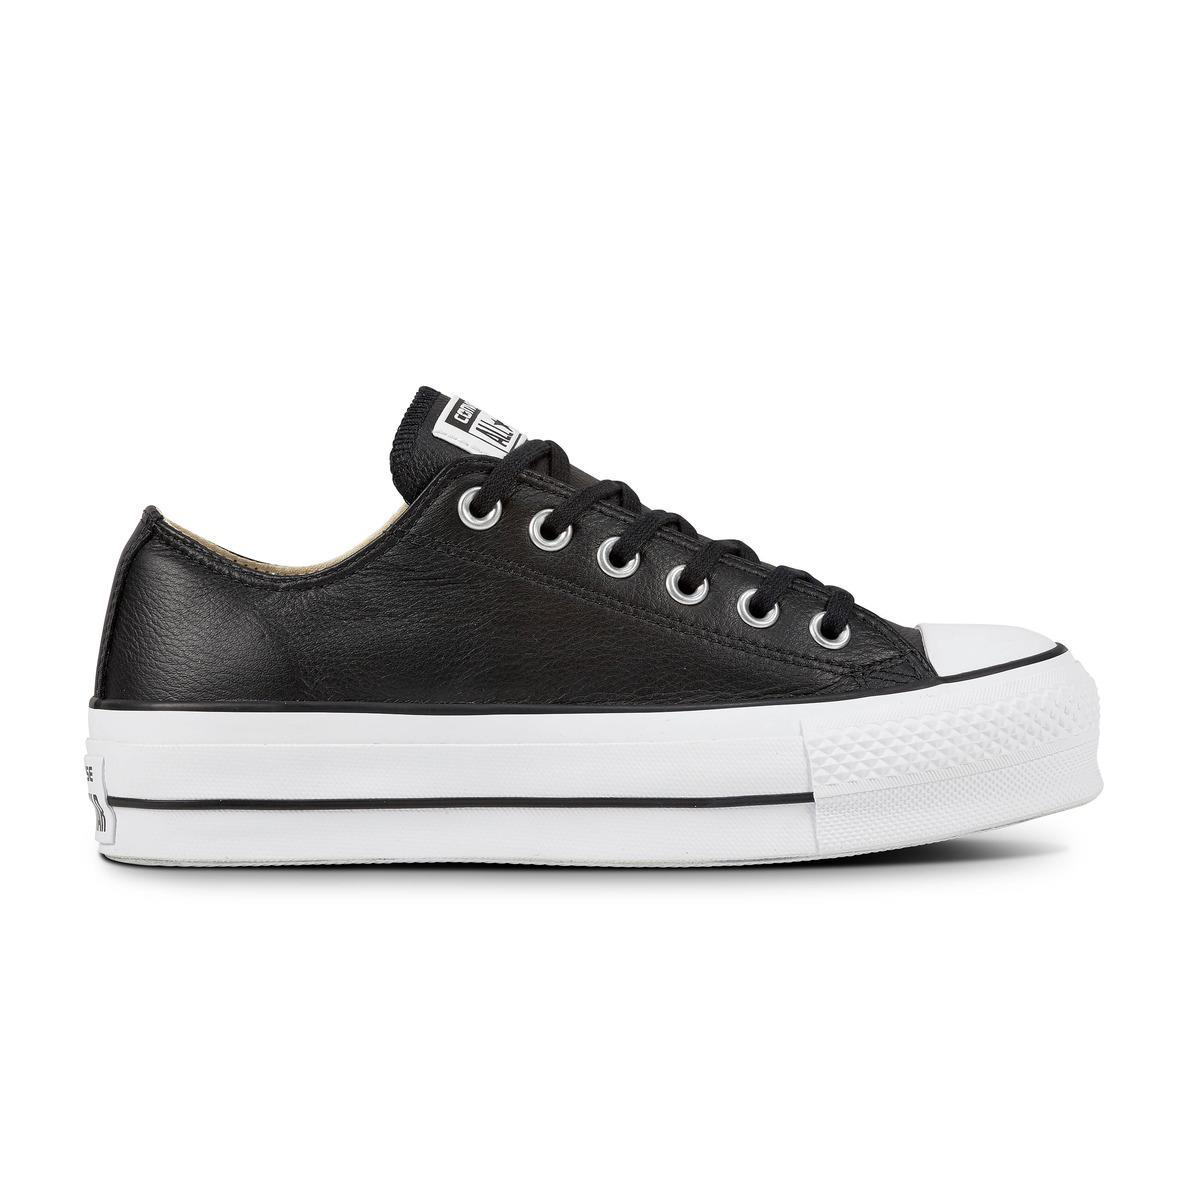 6648d74df9 Converse Chuck Taylor All Star Lift Clean Platform Low Leather ...